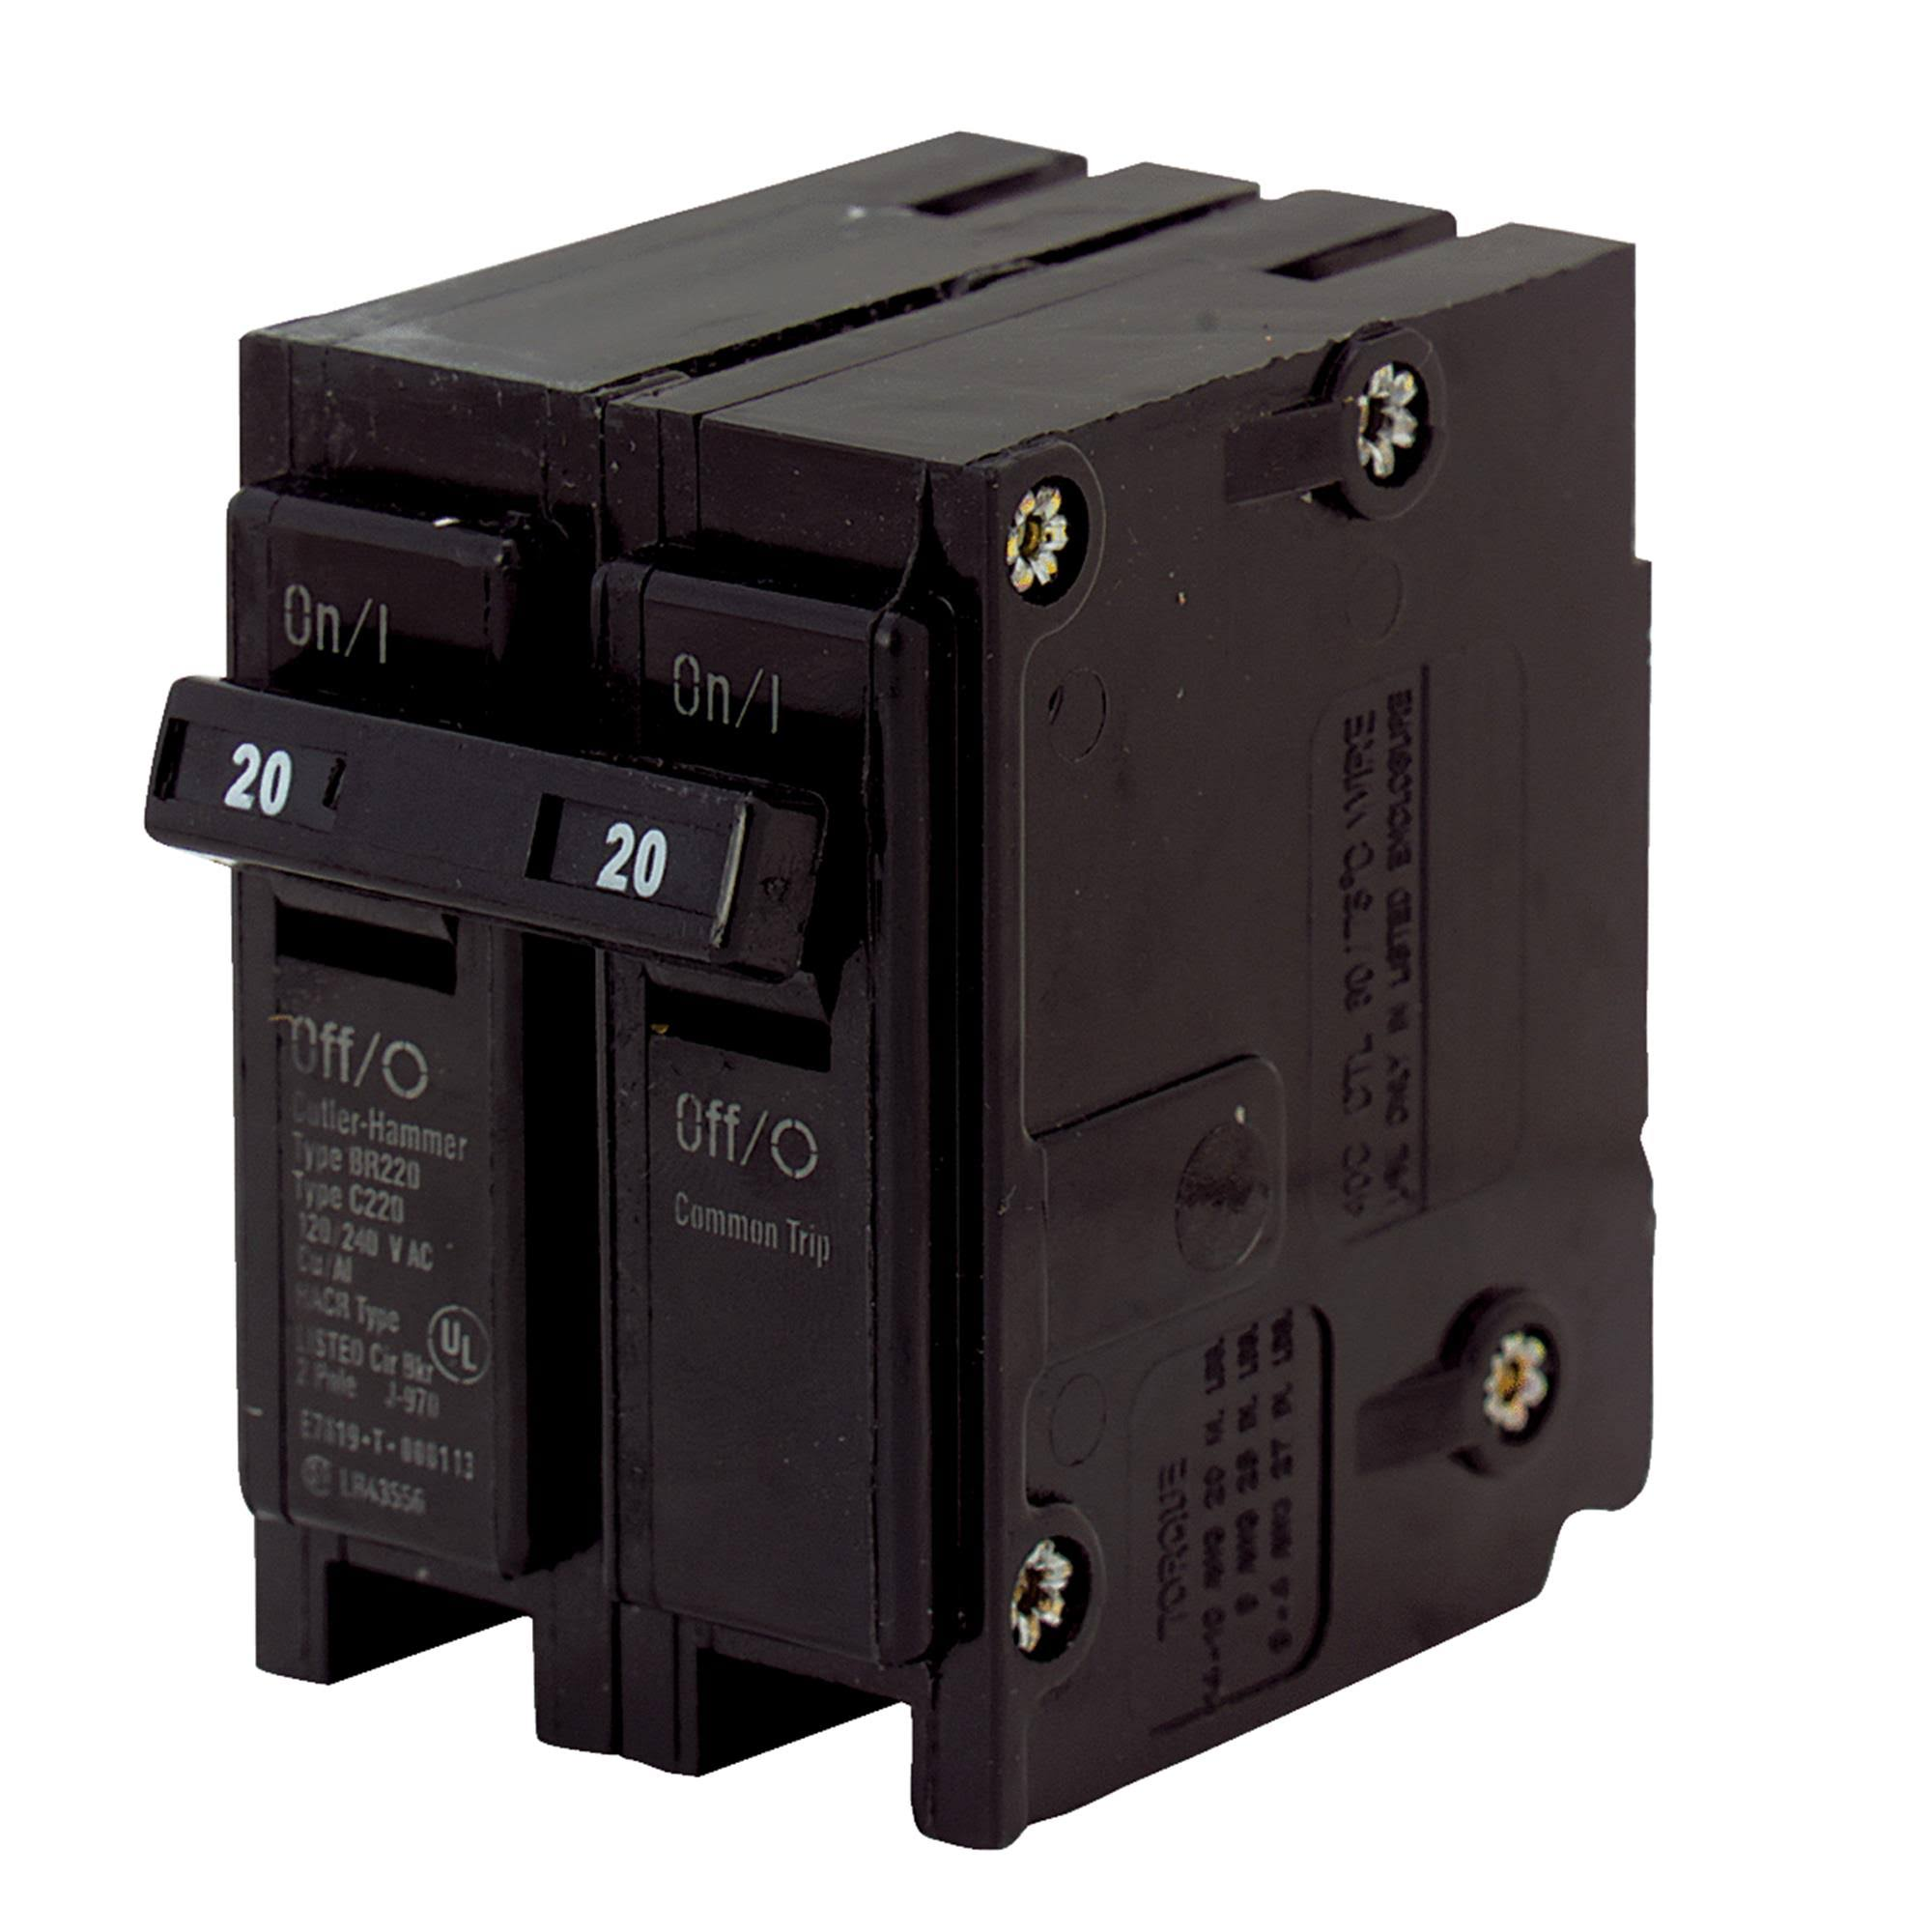 Eaton Double Pole Circuit Breaker - 20 Amp